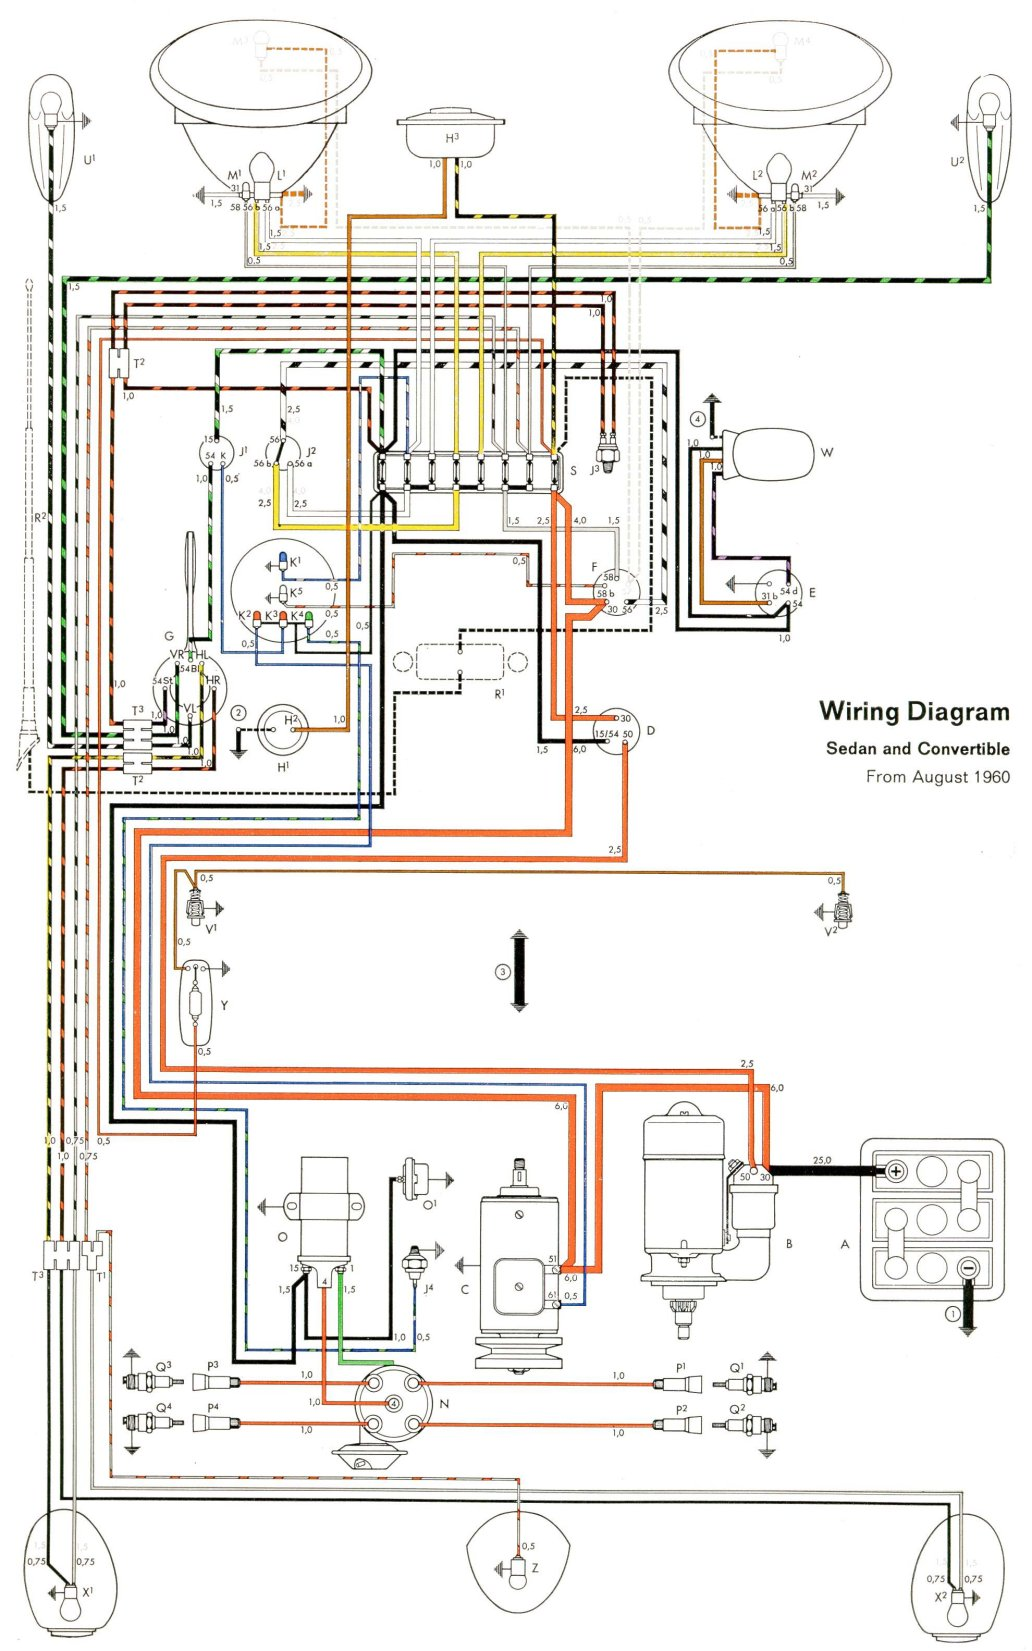 bug_61 wiring diagrams \u2022 j squared co Basic Electrical Wiring Diagrams at readyjetset.co